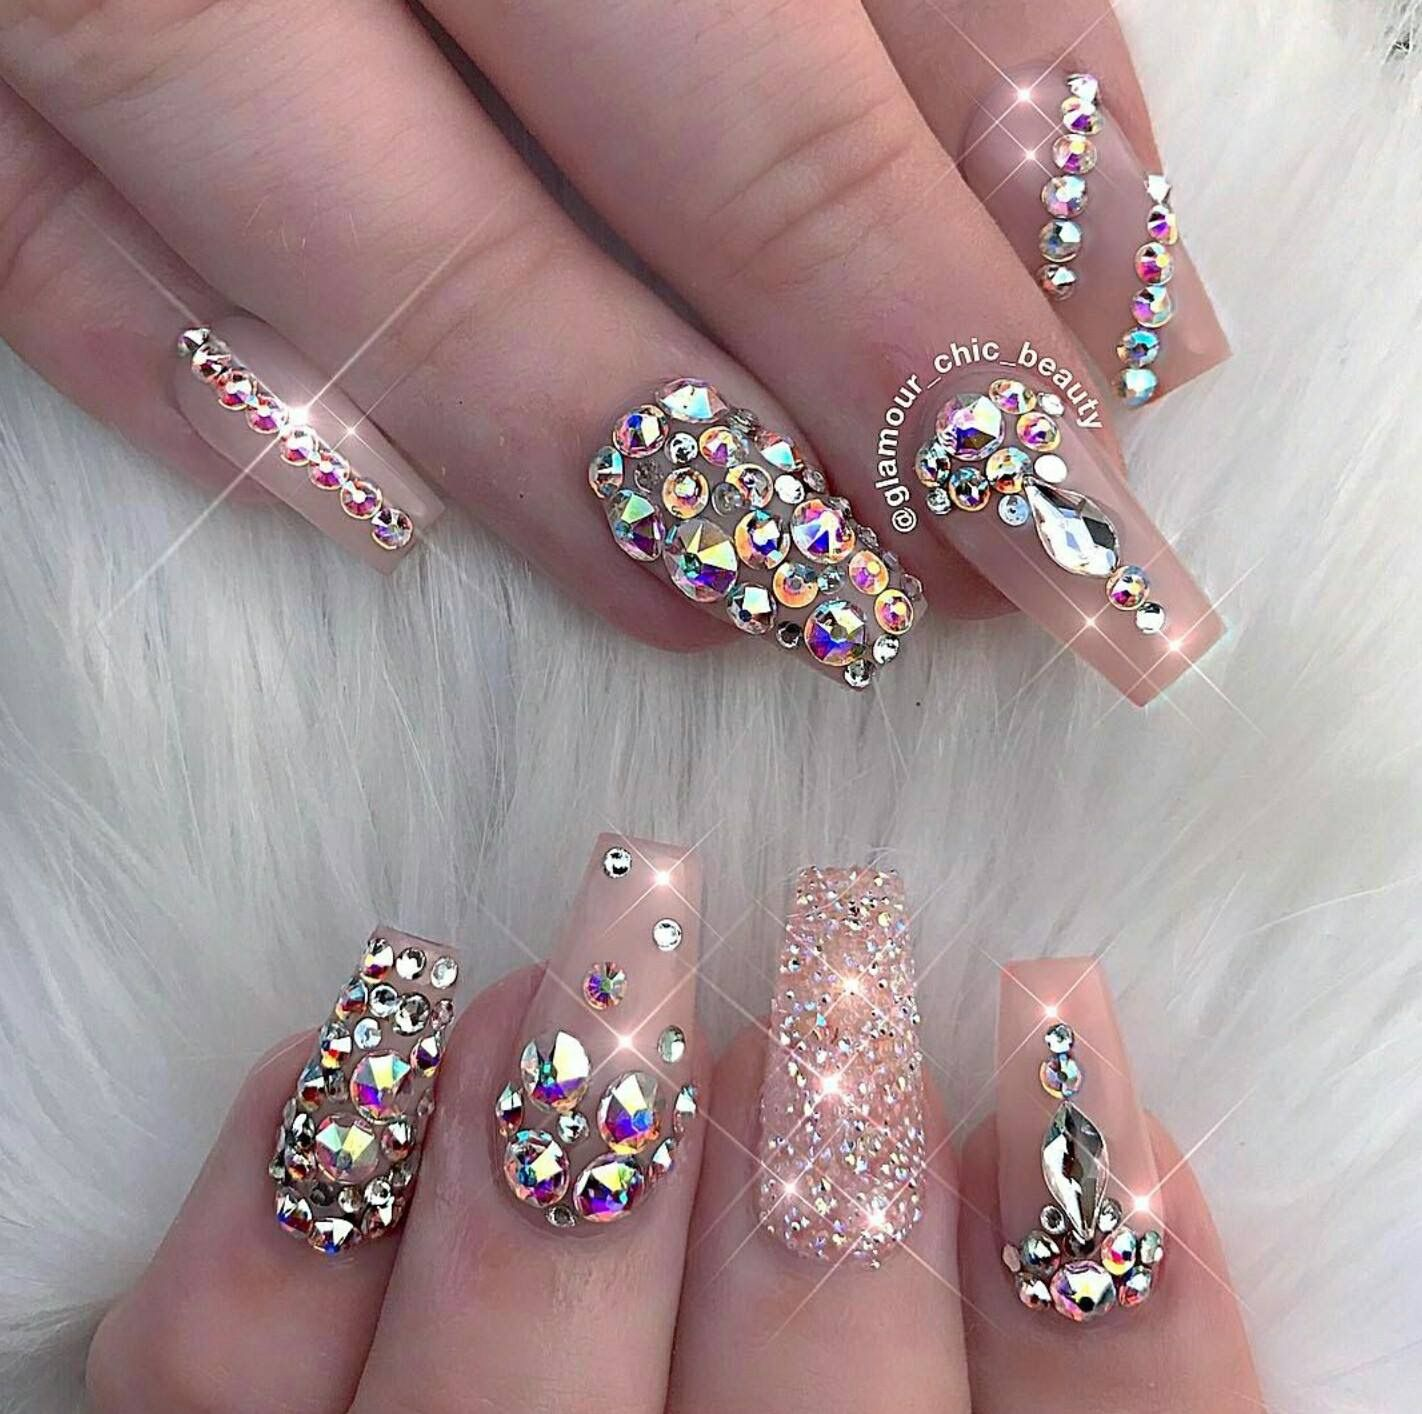 Pin van Jessica G op Nails | Pinterest - Nagel